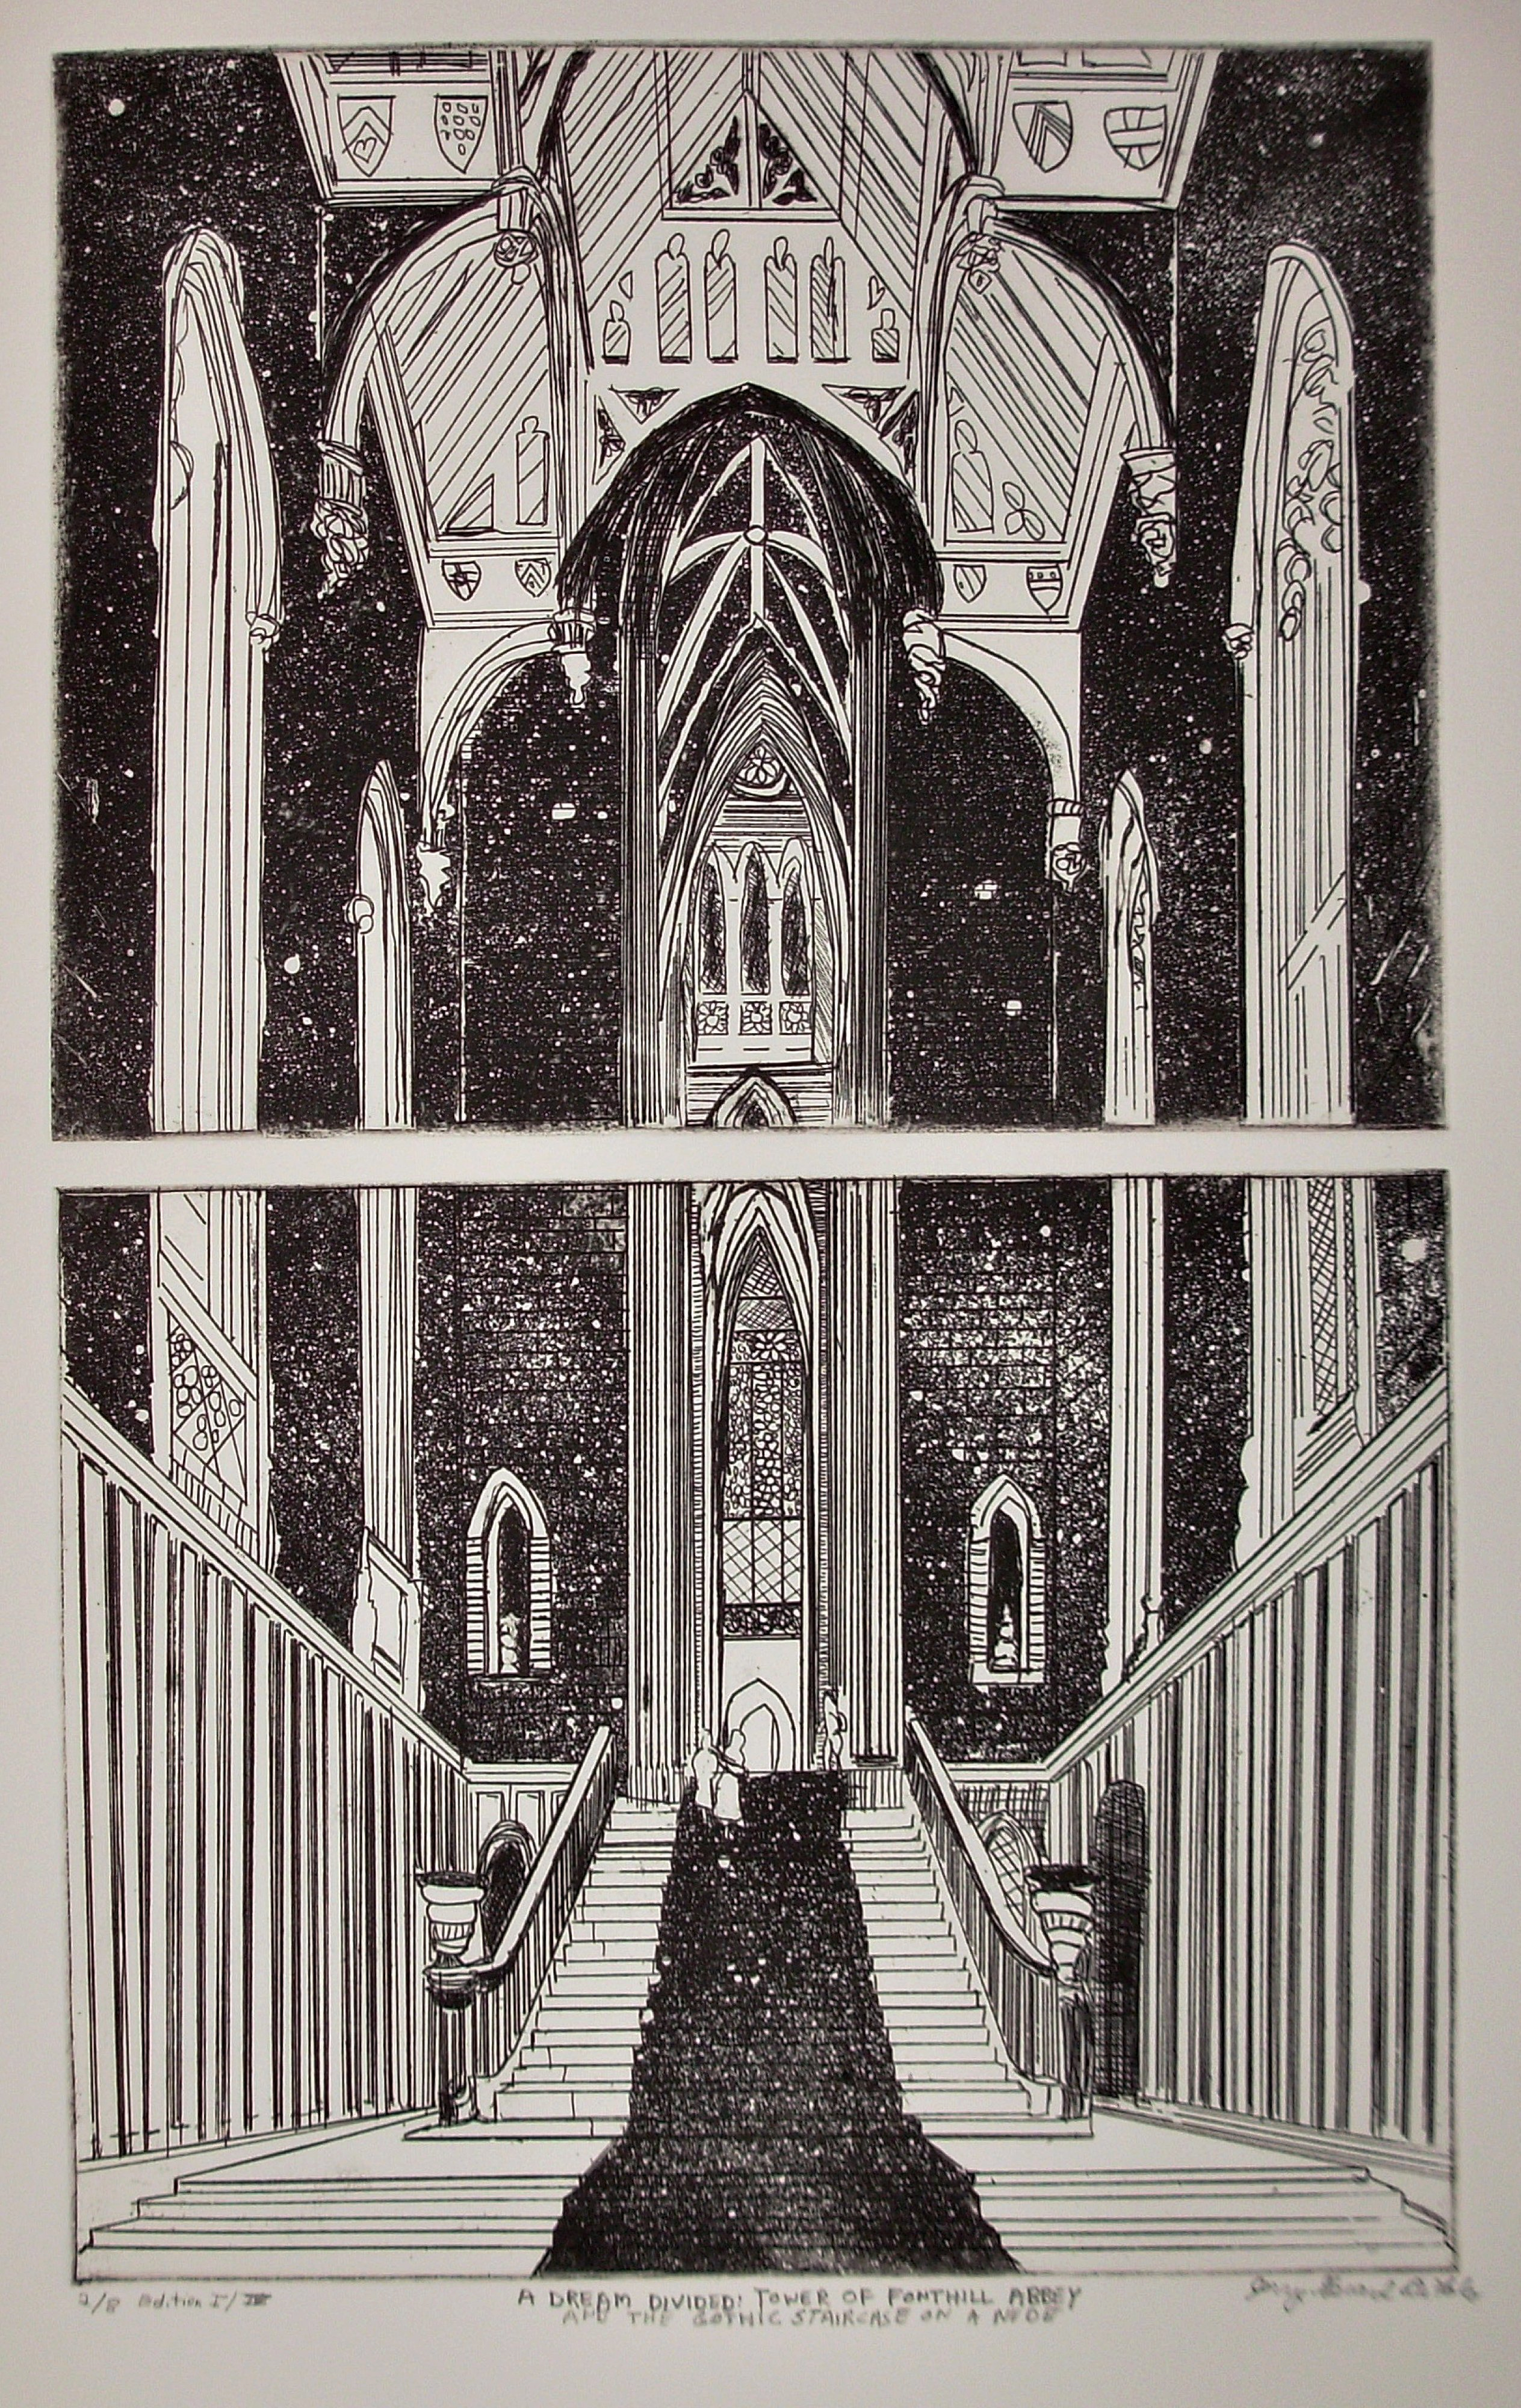 Jerry  Di Falco: 'A DREAM DIVIDED AT FONTHILL ABBEY ', 2012 Etching, Optical. Full title is, A DREAM DIVIDED TOWER OF FONTHILL ABBEYThis amazing and hypnotic etching was hand printed and published by the artist at The Center for Works on Paper at 705 Christian Street in South Philadelphia, Pennsylvania, which is associated with The Philadelphia Museum of Art, 26th and the ...